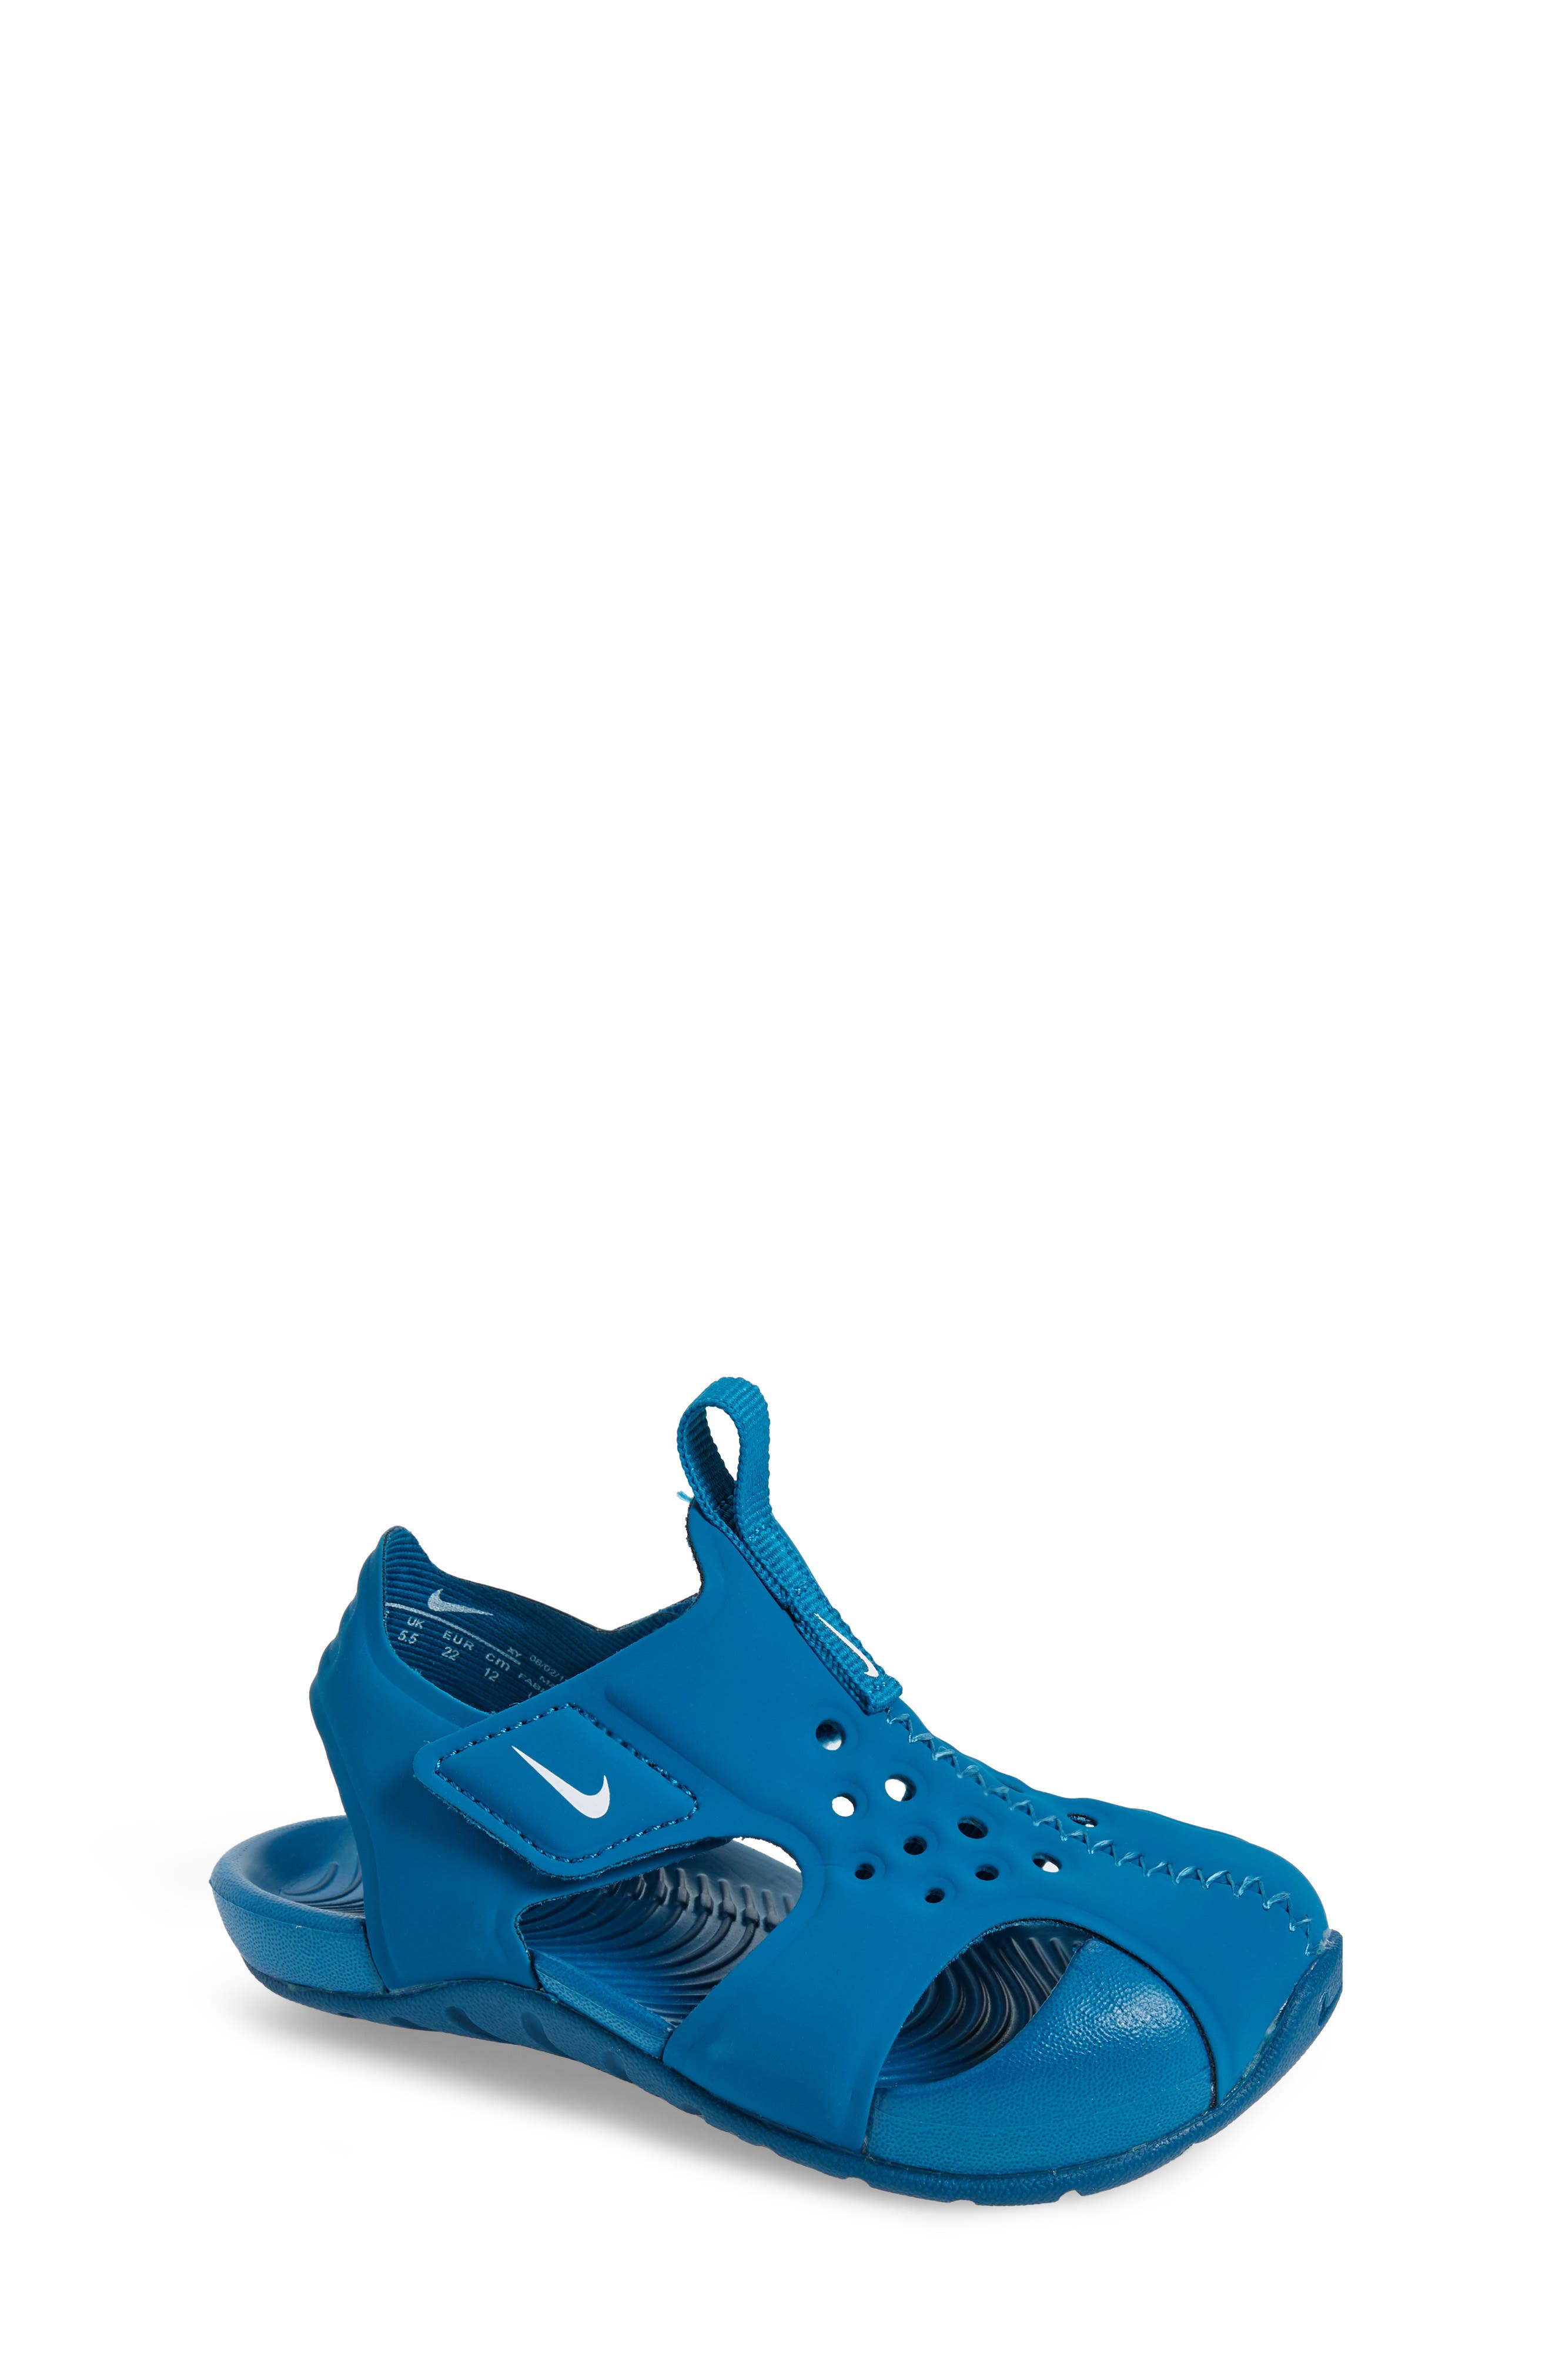 Nike Sunray Protect 2 Sandal (Baby, Walker, Toddler & Little Kid)